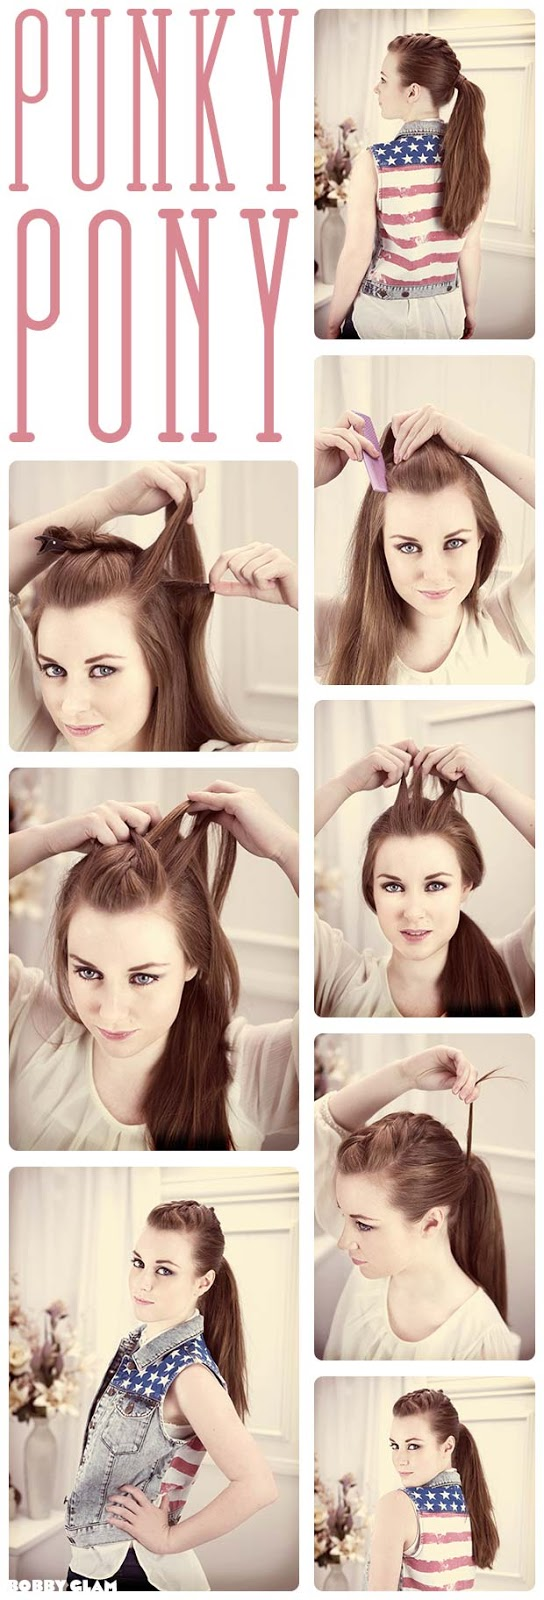 HD wallpapers hairstyles tutorial pics oveycom.design